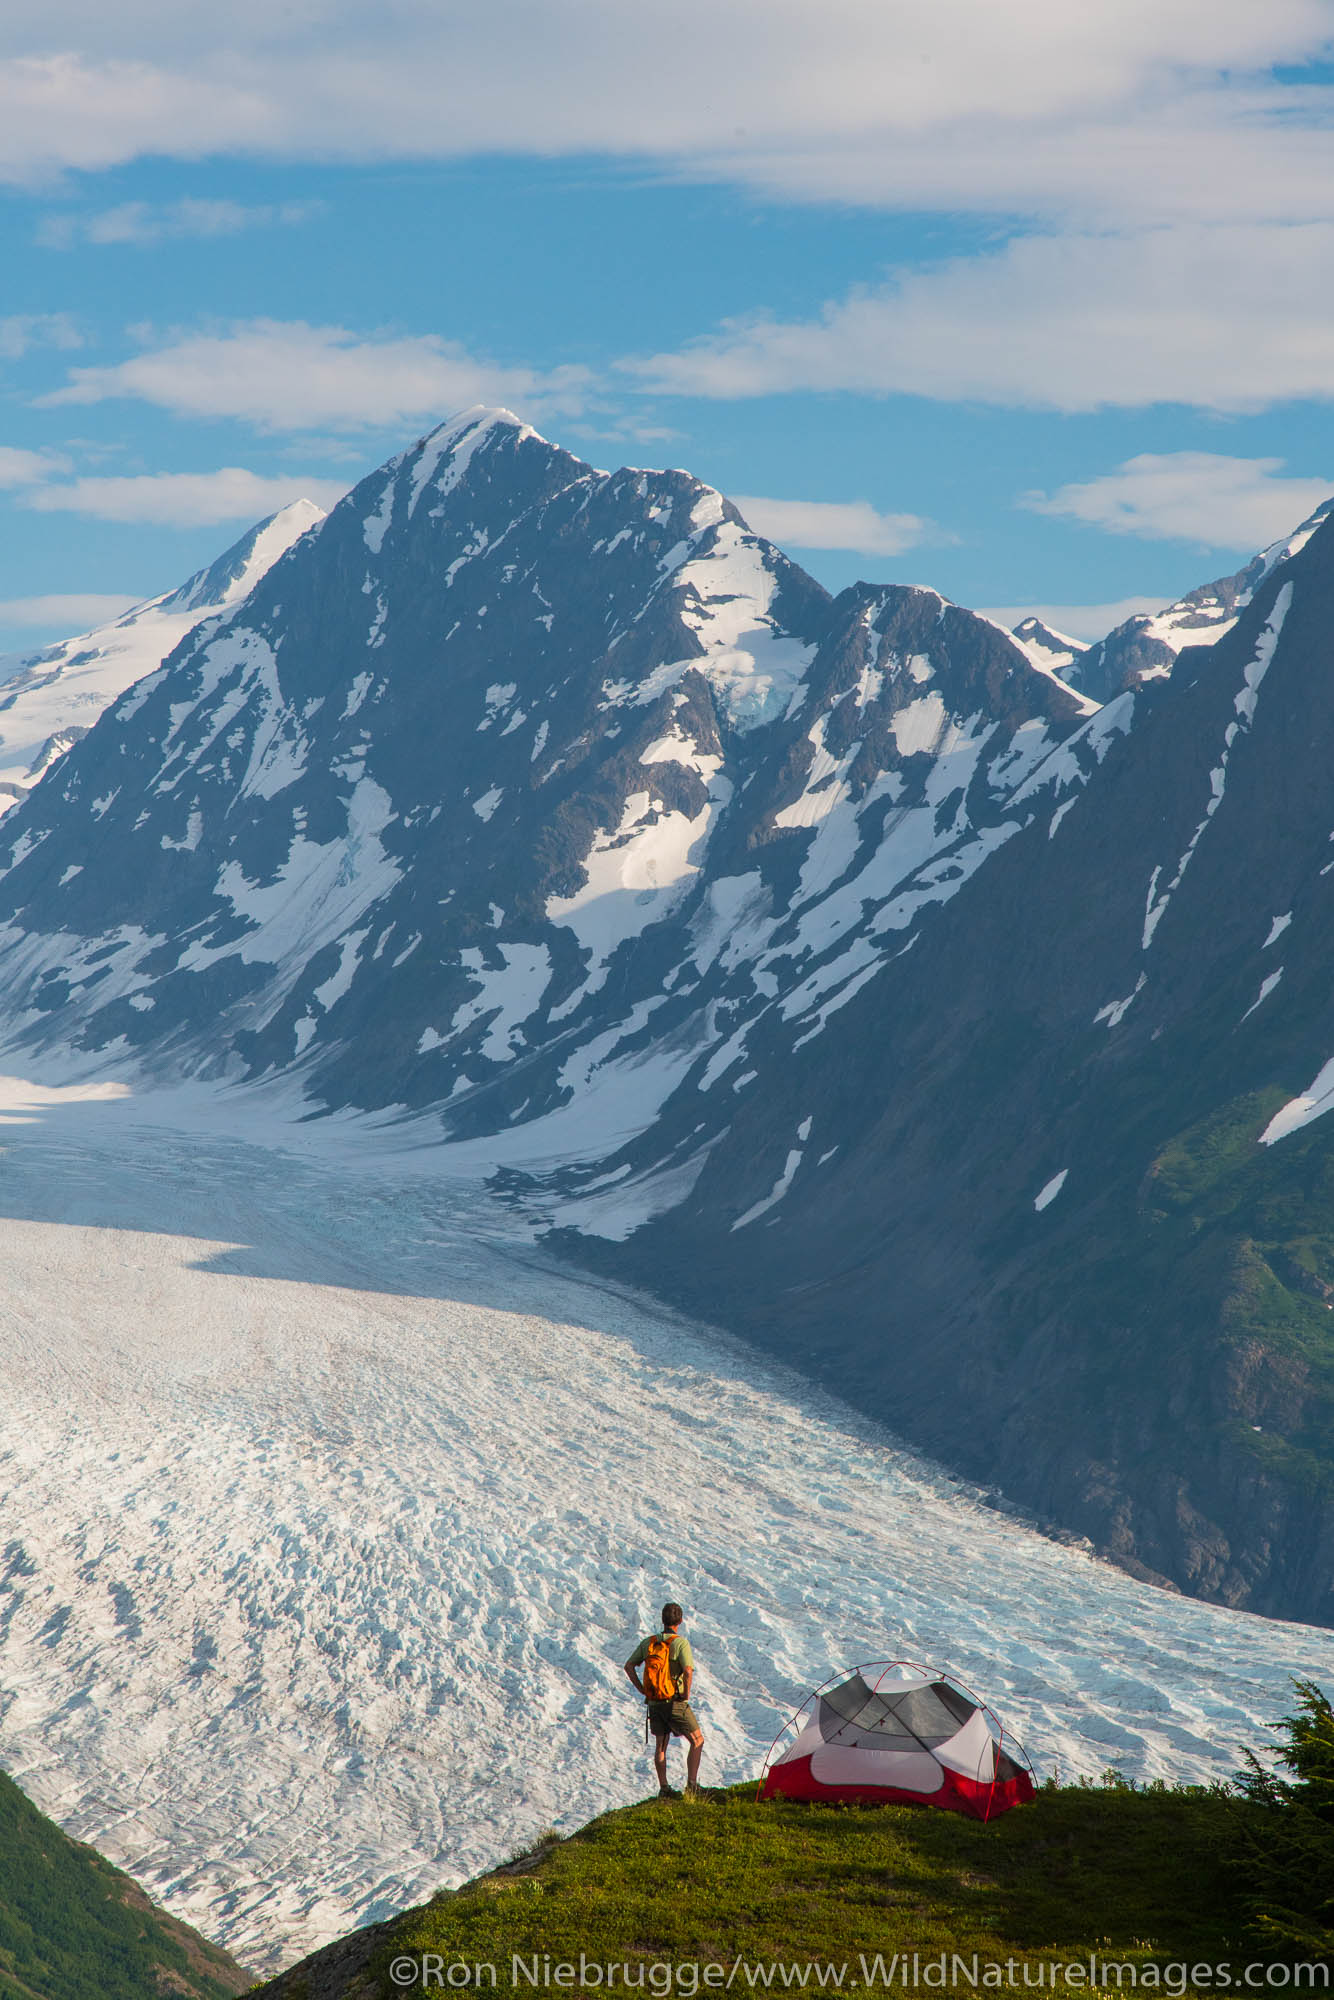 Backpacking trip to the Spencer Glacier Bench, Chugach National Forest, Alaska.